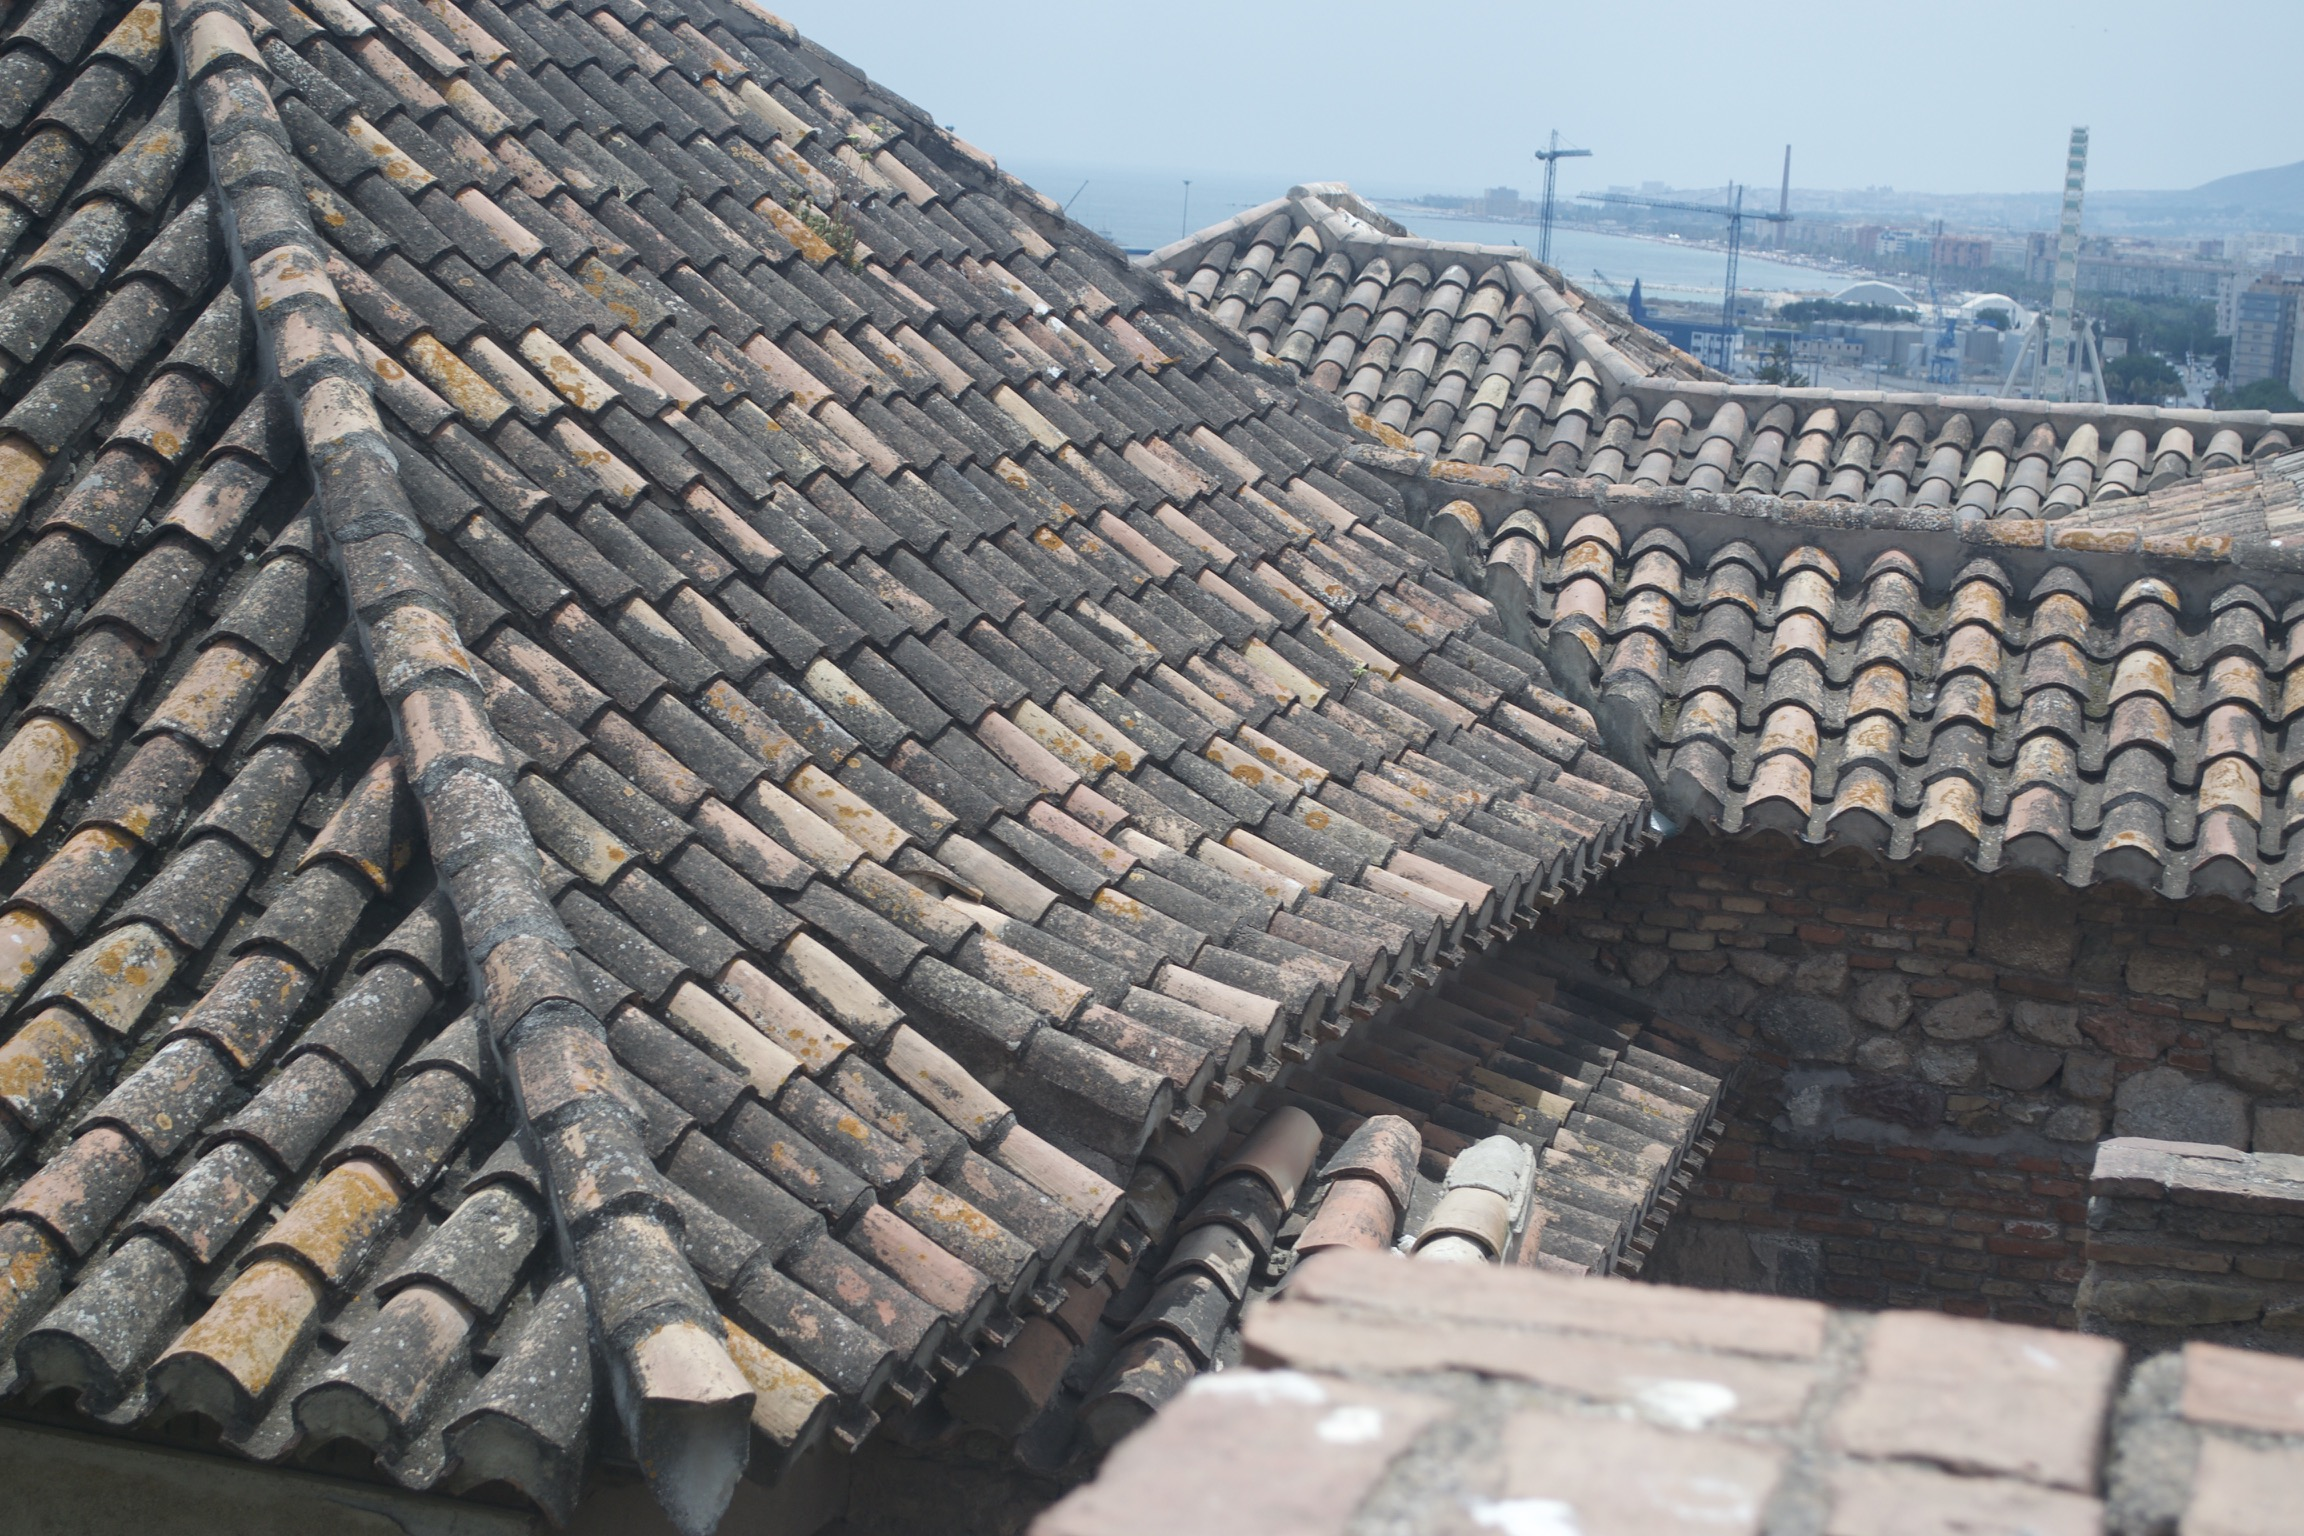 Tiled roofs meet, yielding complicated joints and eaves.